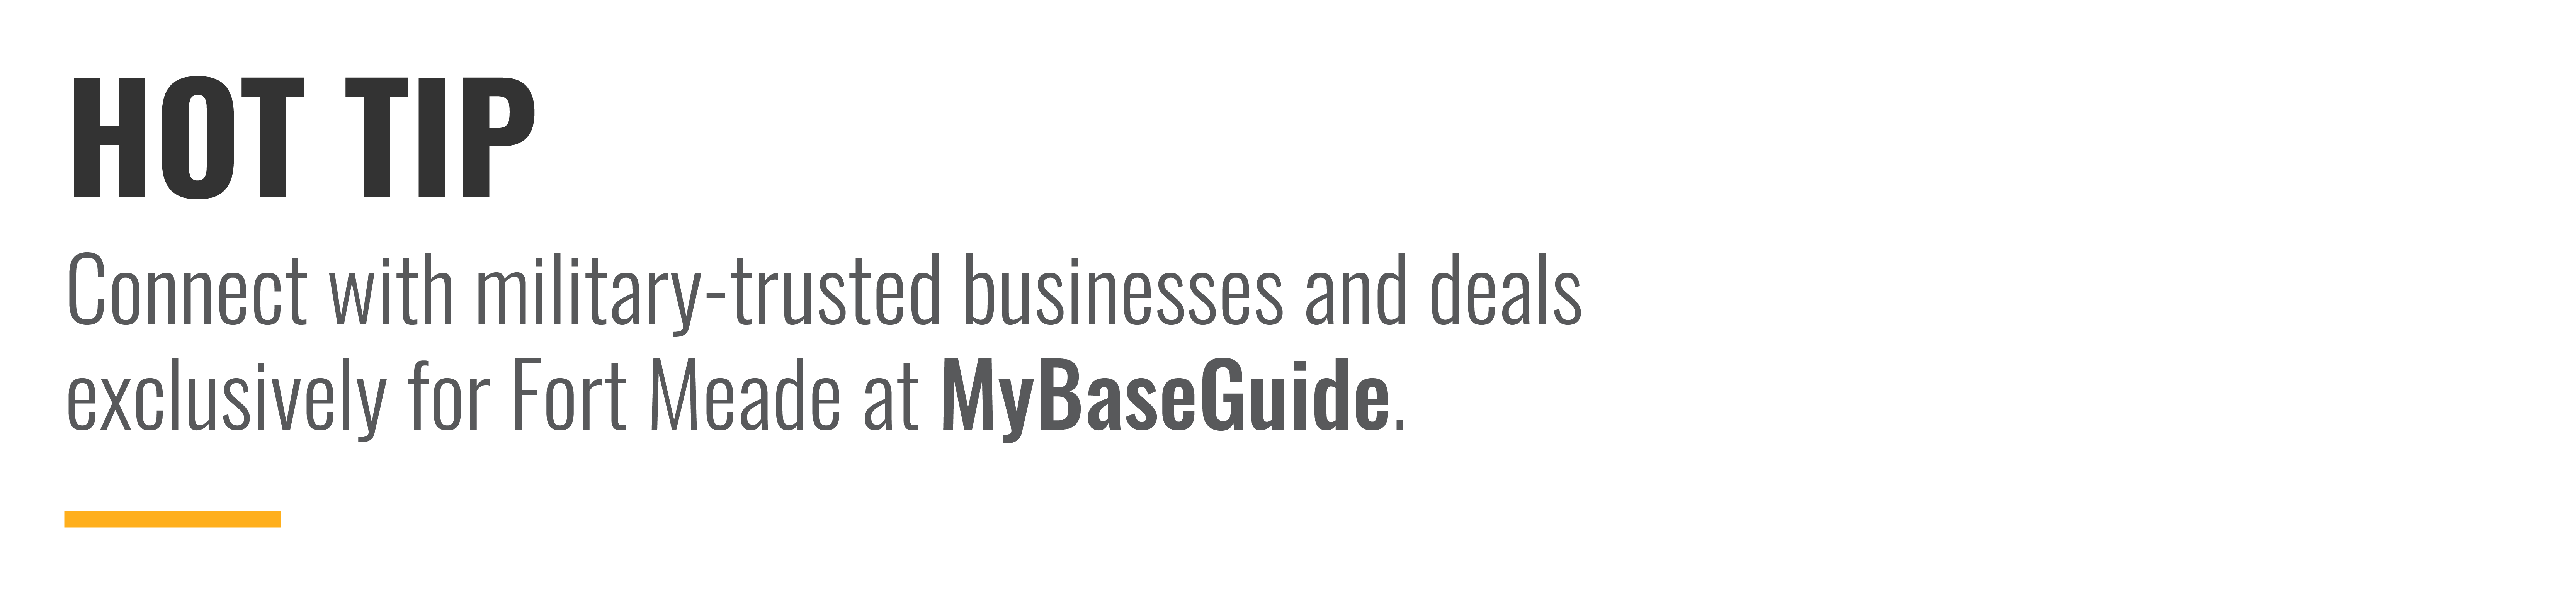 Connect with military-trusted businesses and deals exclusively for Fort Meade